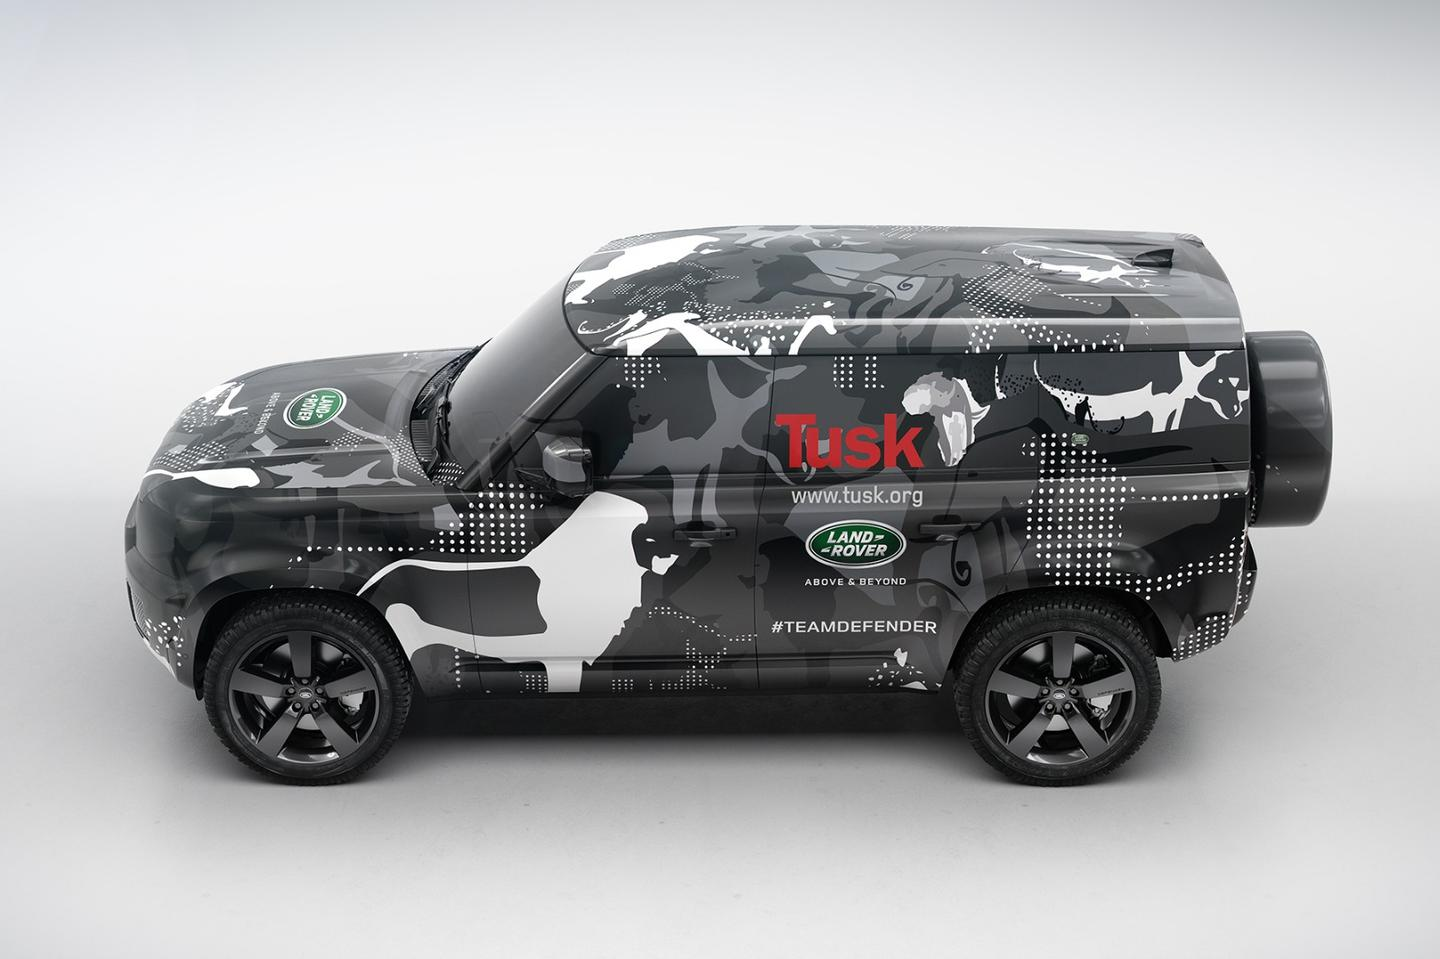 The prototype Land Rover Defender in itsTusk Trust livery